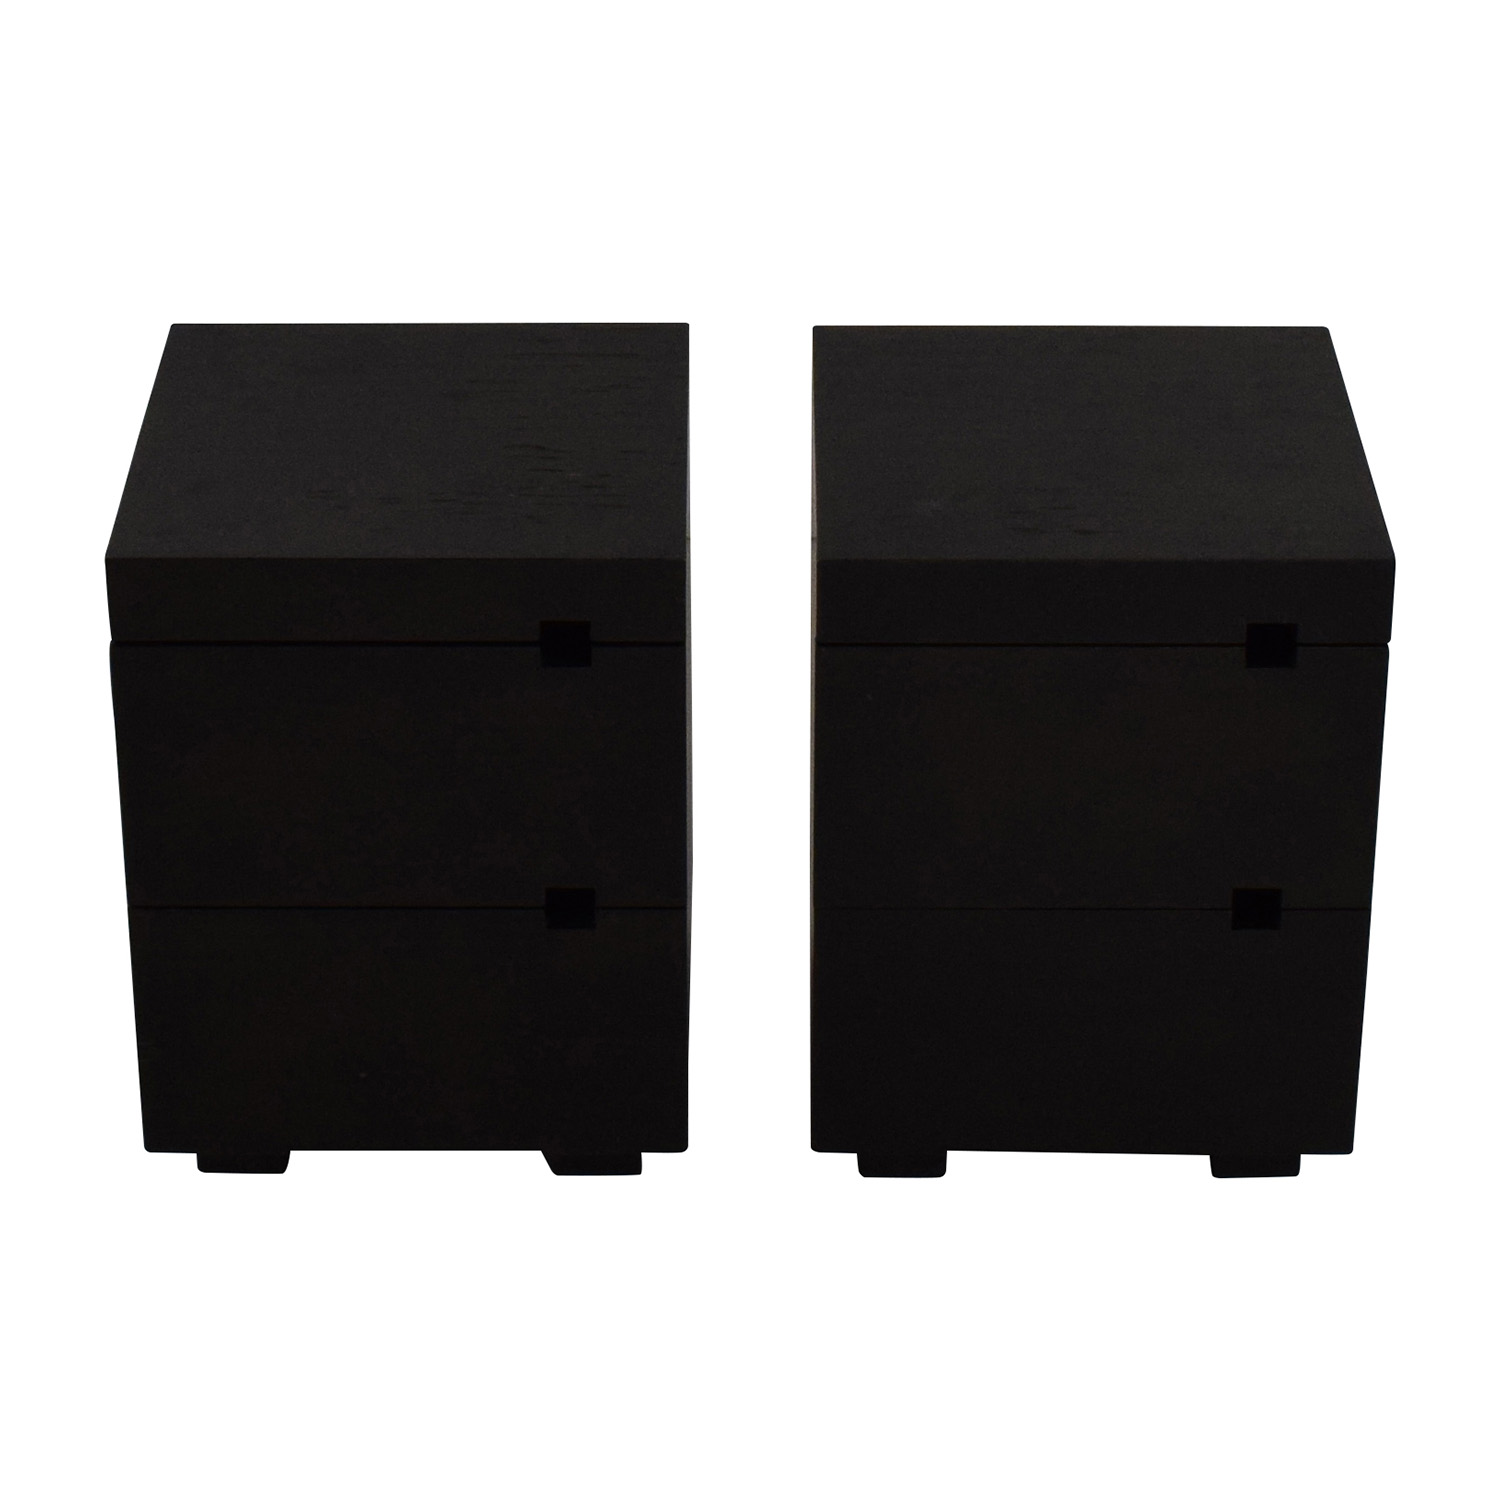 West Elm West Elm 2-Drawer Nightstand Pair coupon